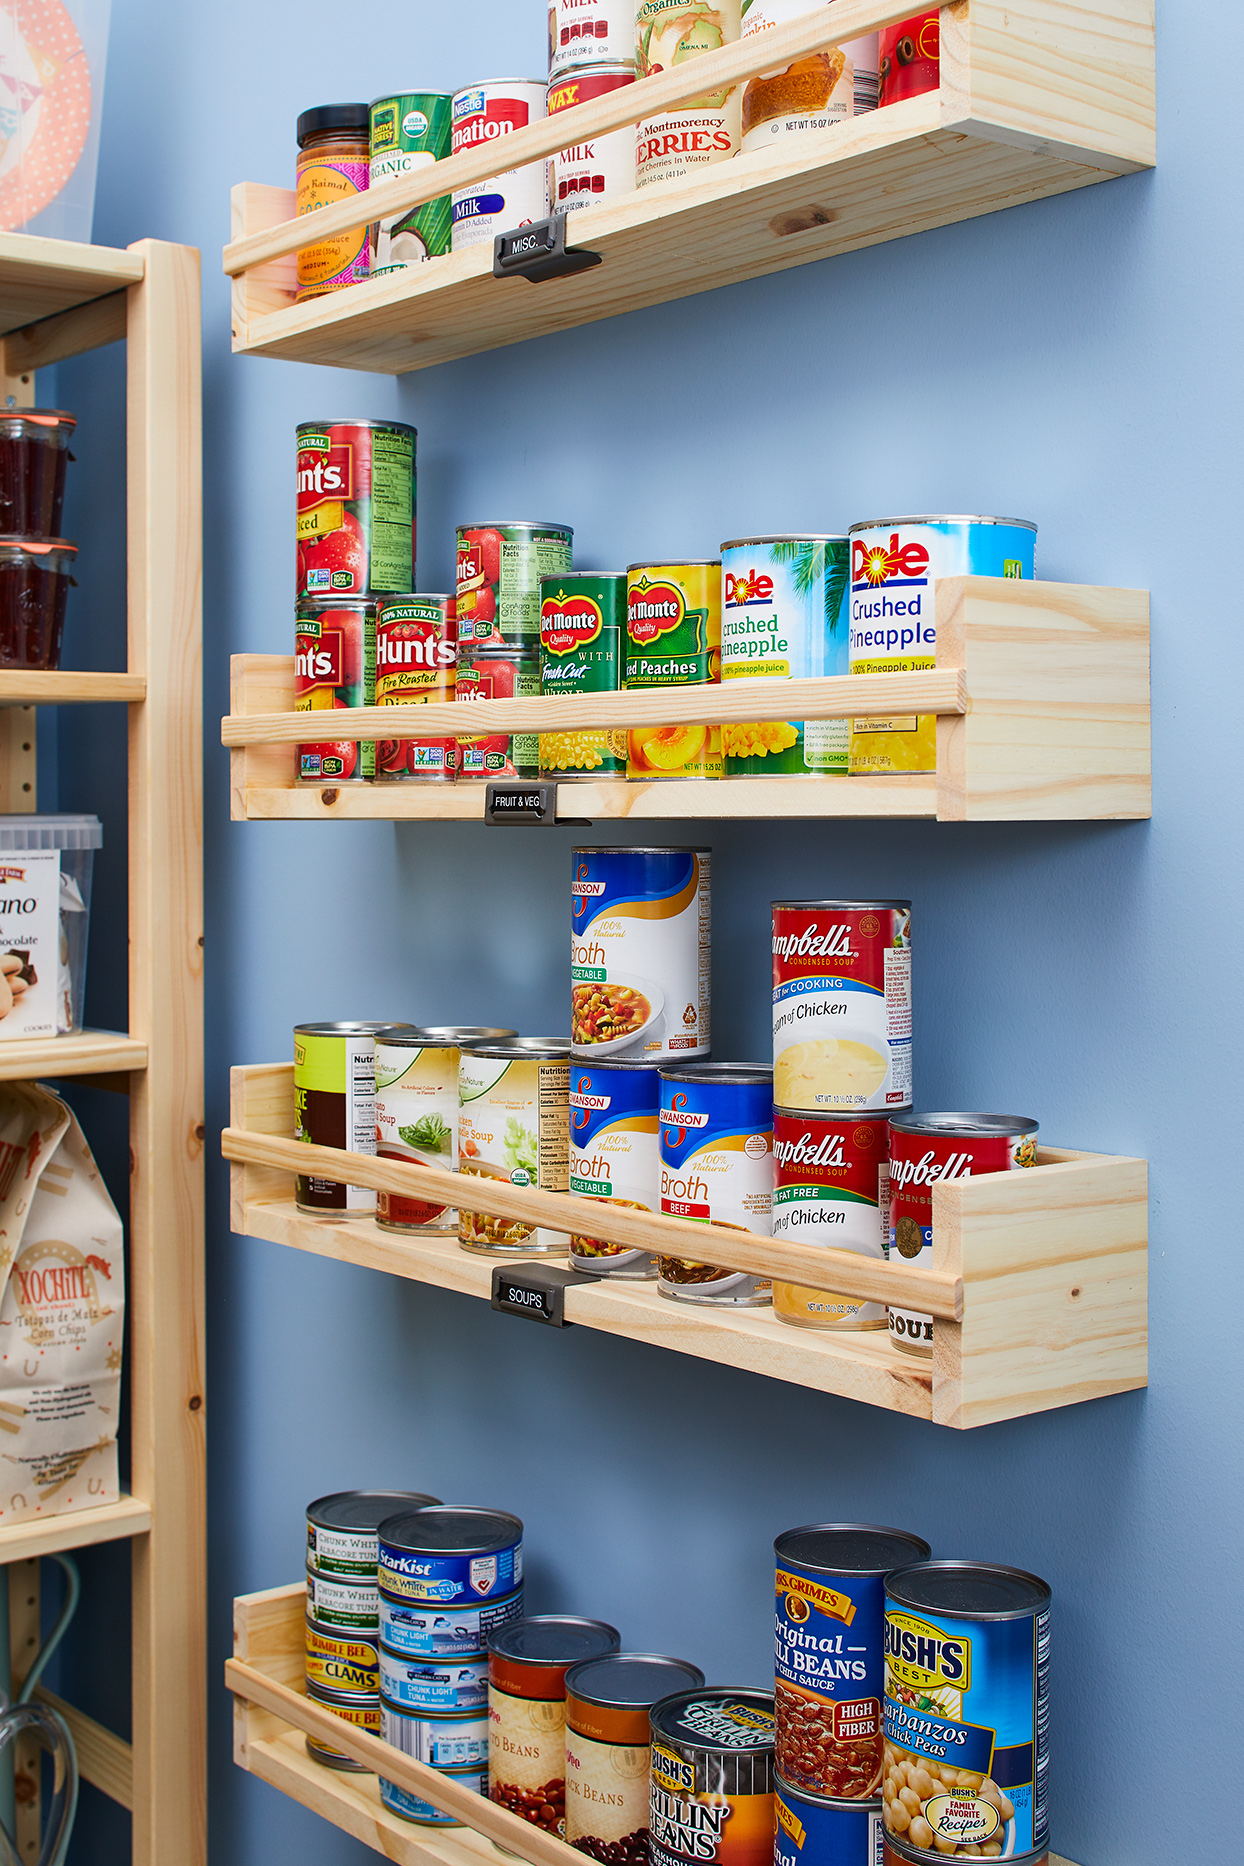 Shelves of canned food in pantry